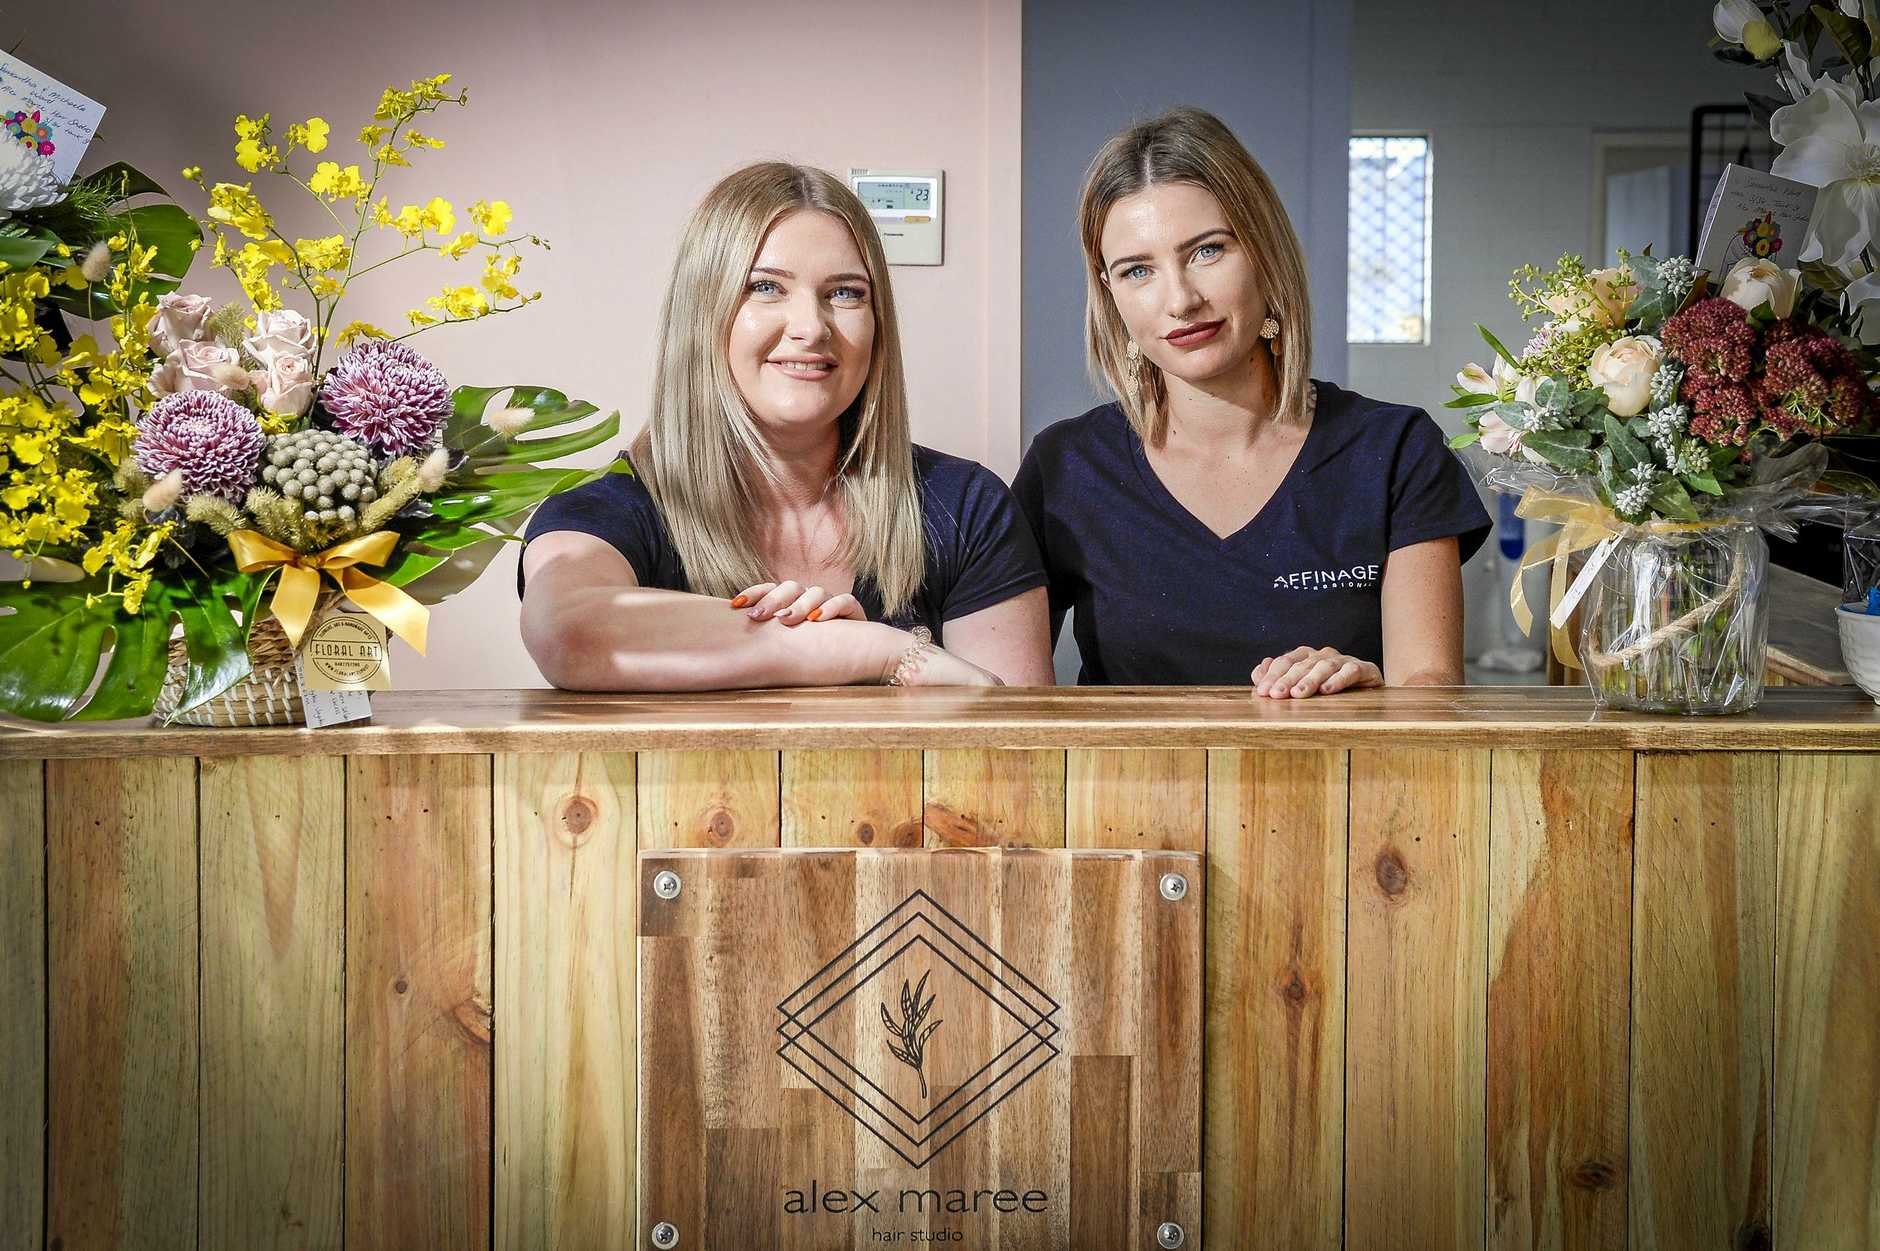 Sisters Samantha Ward and Michaela Ward have opened a new hairdressing salon, Alex Maree Hair Studio on Tank Street, Gladstone.